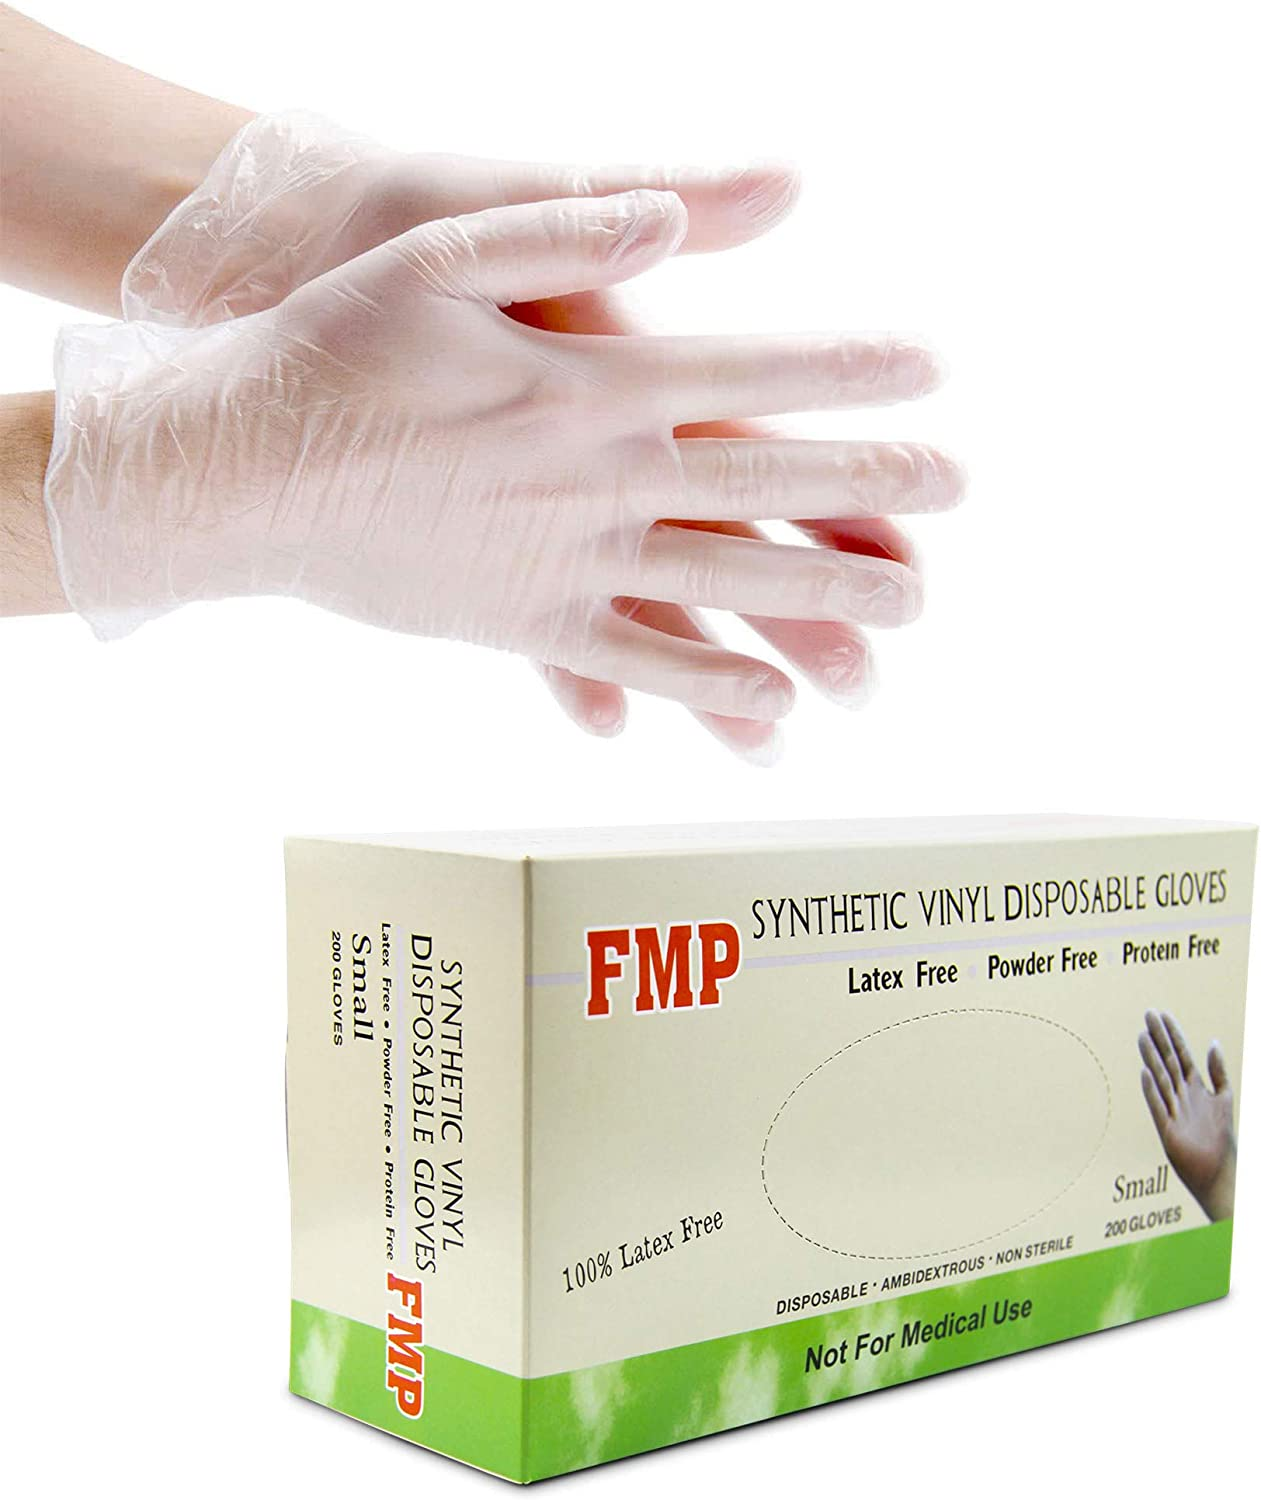 Disposable Vinyl Gloves, Non-Sterile, Powder Free, Smooth Touch, Food Service Grade, Small Size [200 Pack] 71TG5webomL